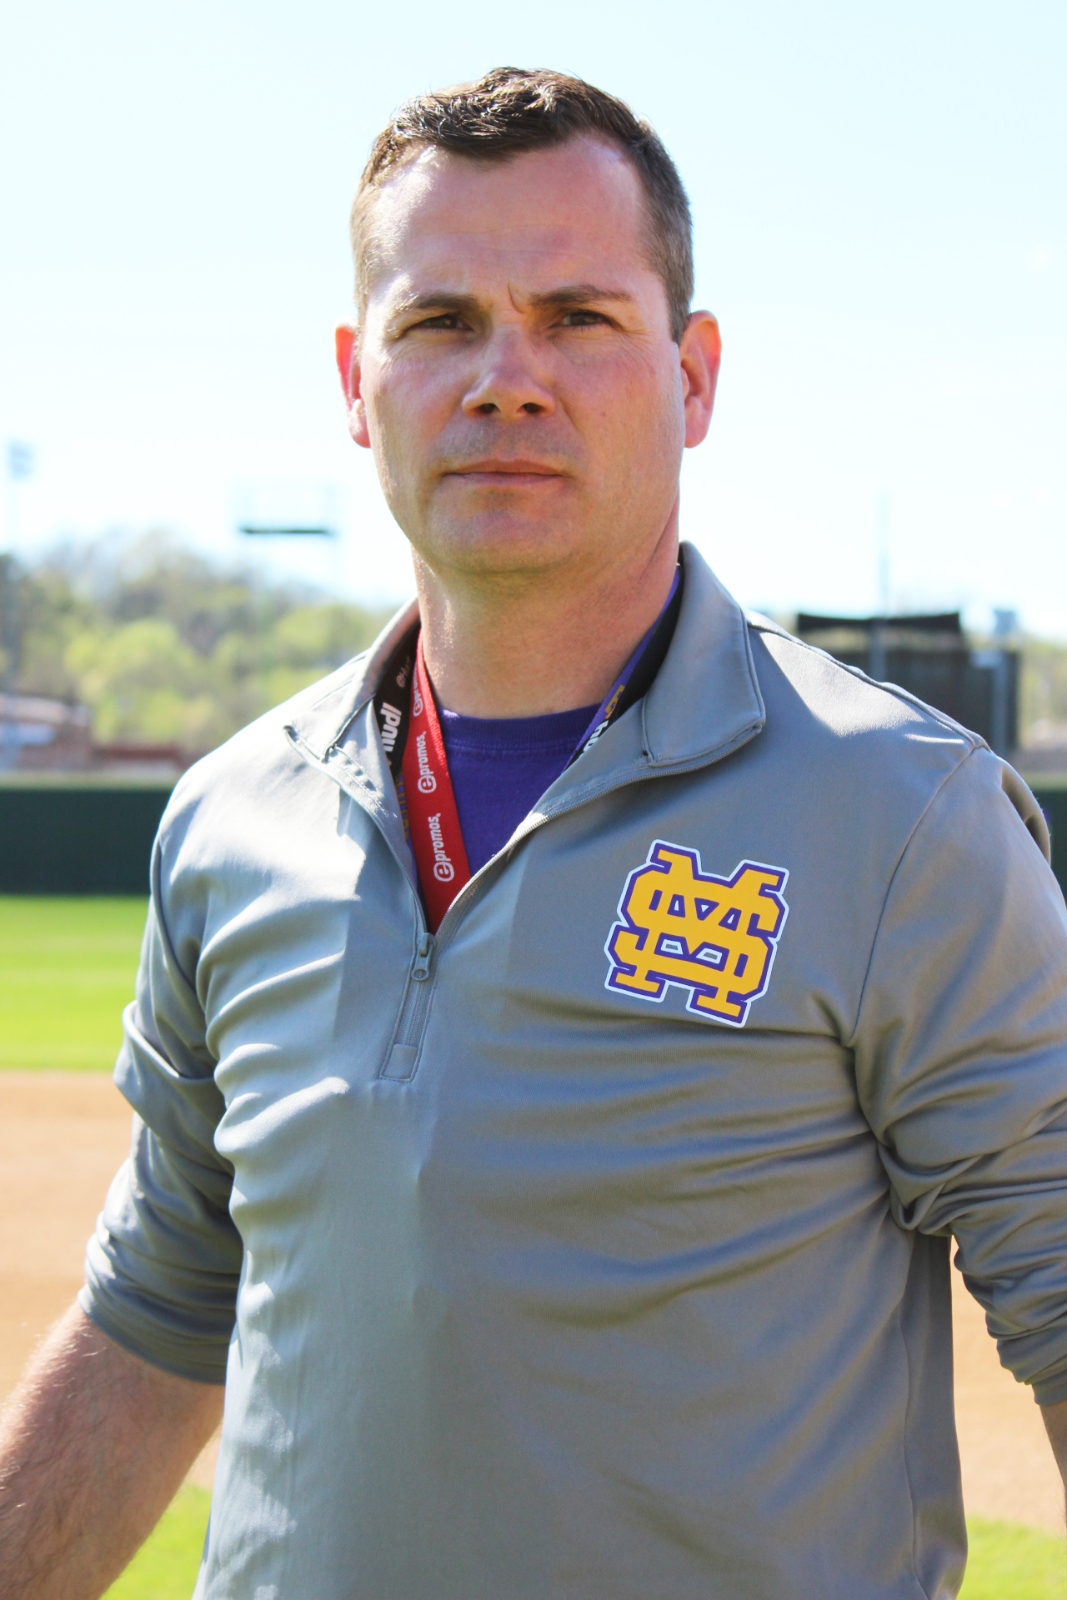 Davy Cothron Named New TCHS Baseball Coach